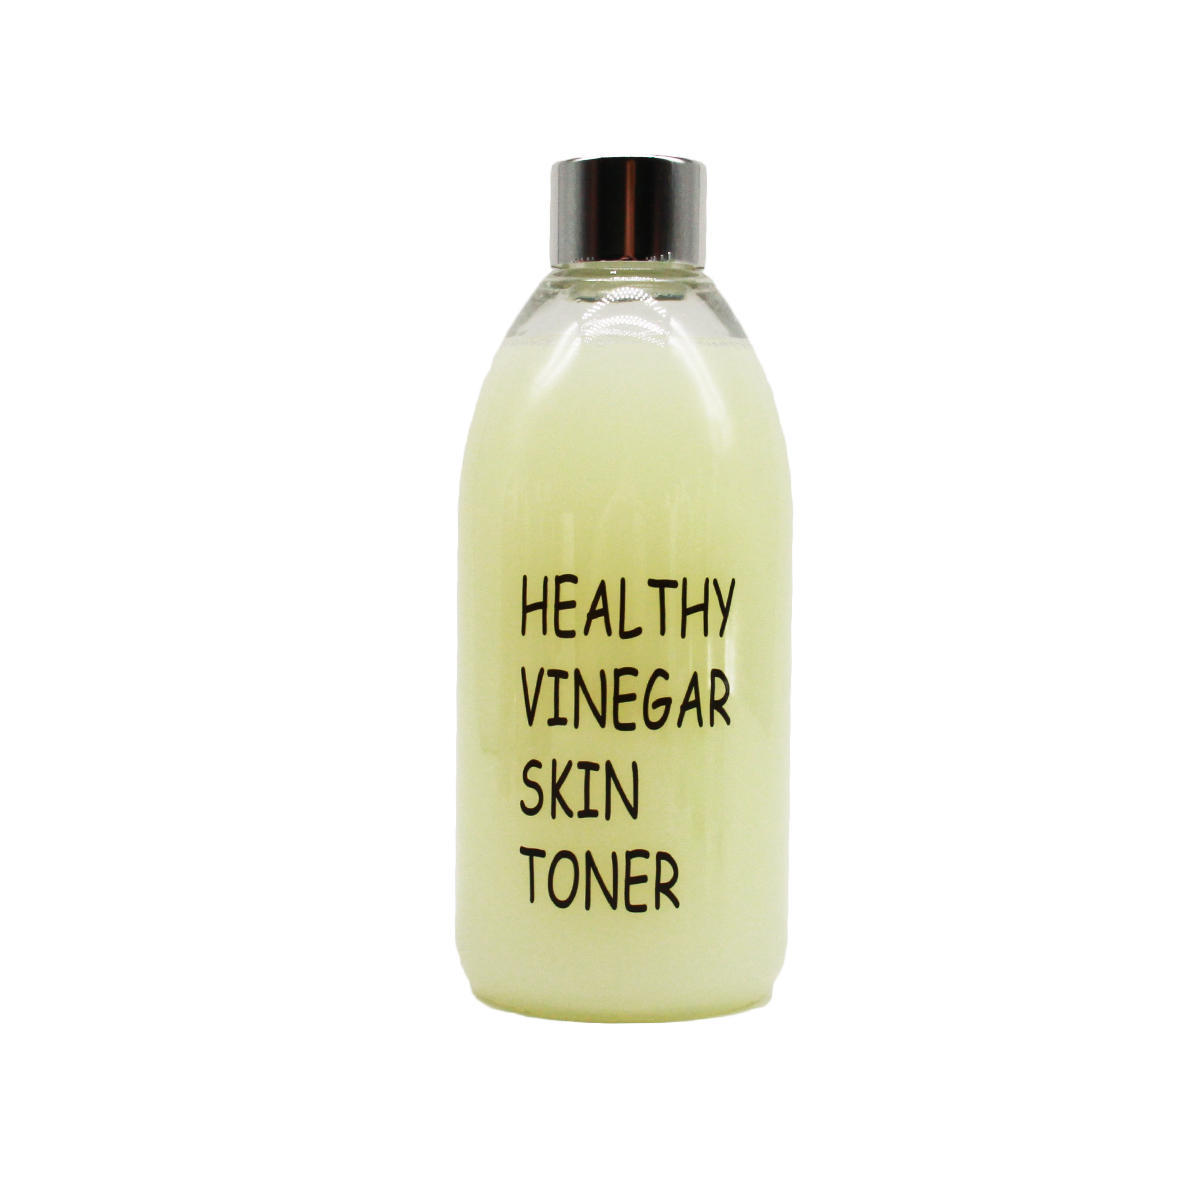 Скидки Тонер для лица Рис , REALSKIN, Healthy Vinegar Skin Toner, Rice, 300 мл import_files_3b_3bcb7f285b2911e980fb3408042974b1_3bcb7f295b2911e980fb3408042974b1.jpg